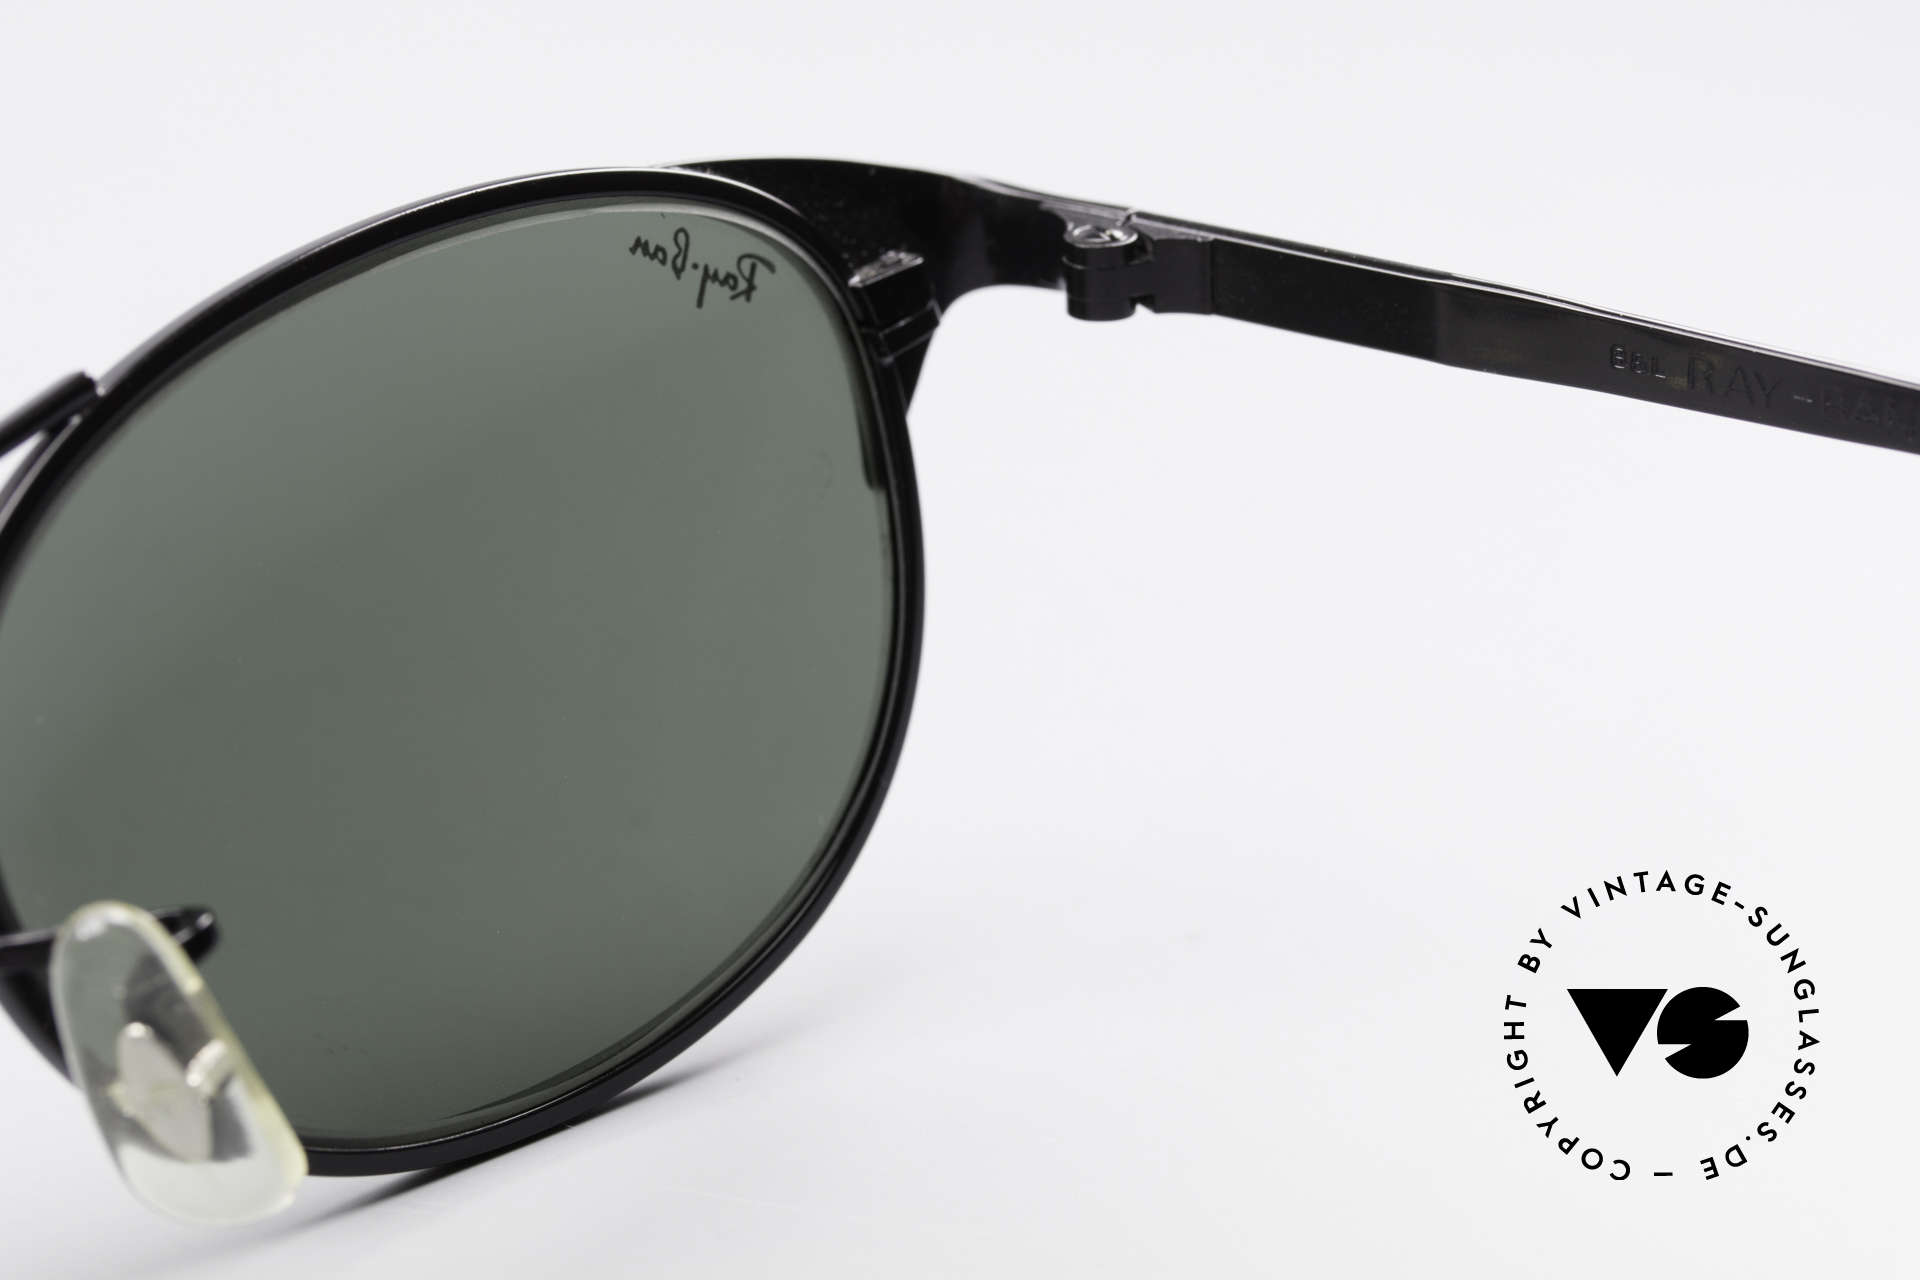 Ray Ban Signet Oval Old B&L USA 80's Sunglasses, NO RETRO, but an authentic old B&L original, Made for Men and Women